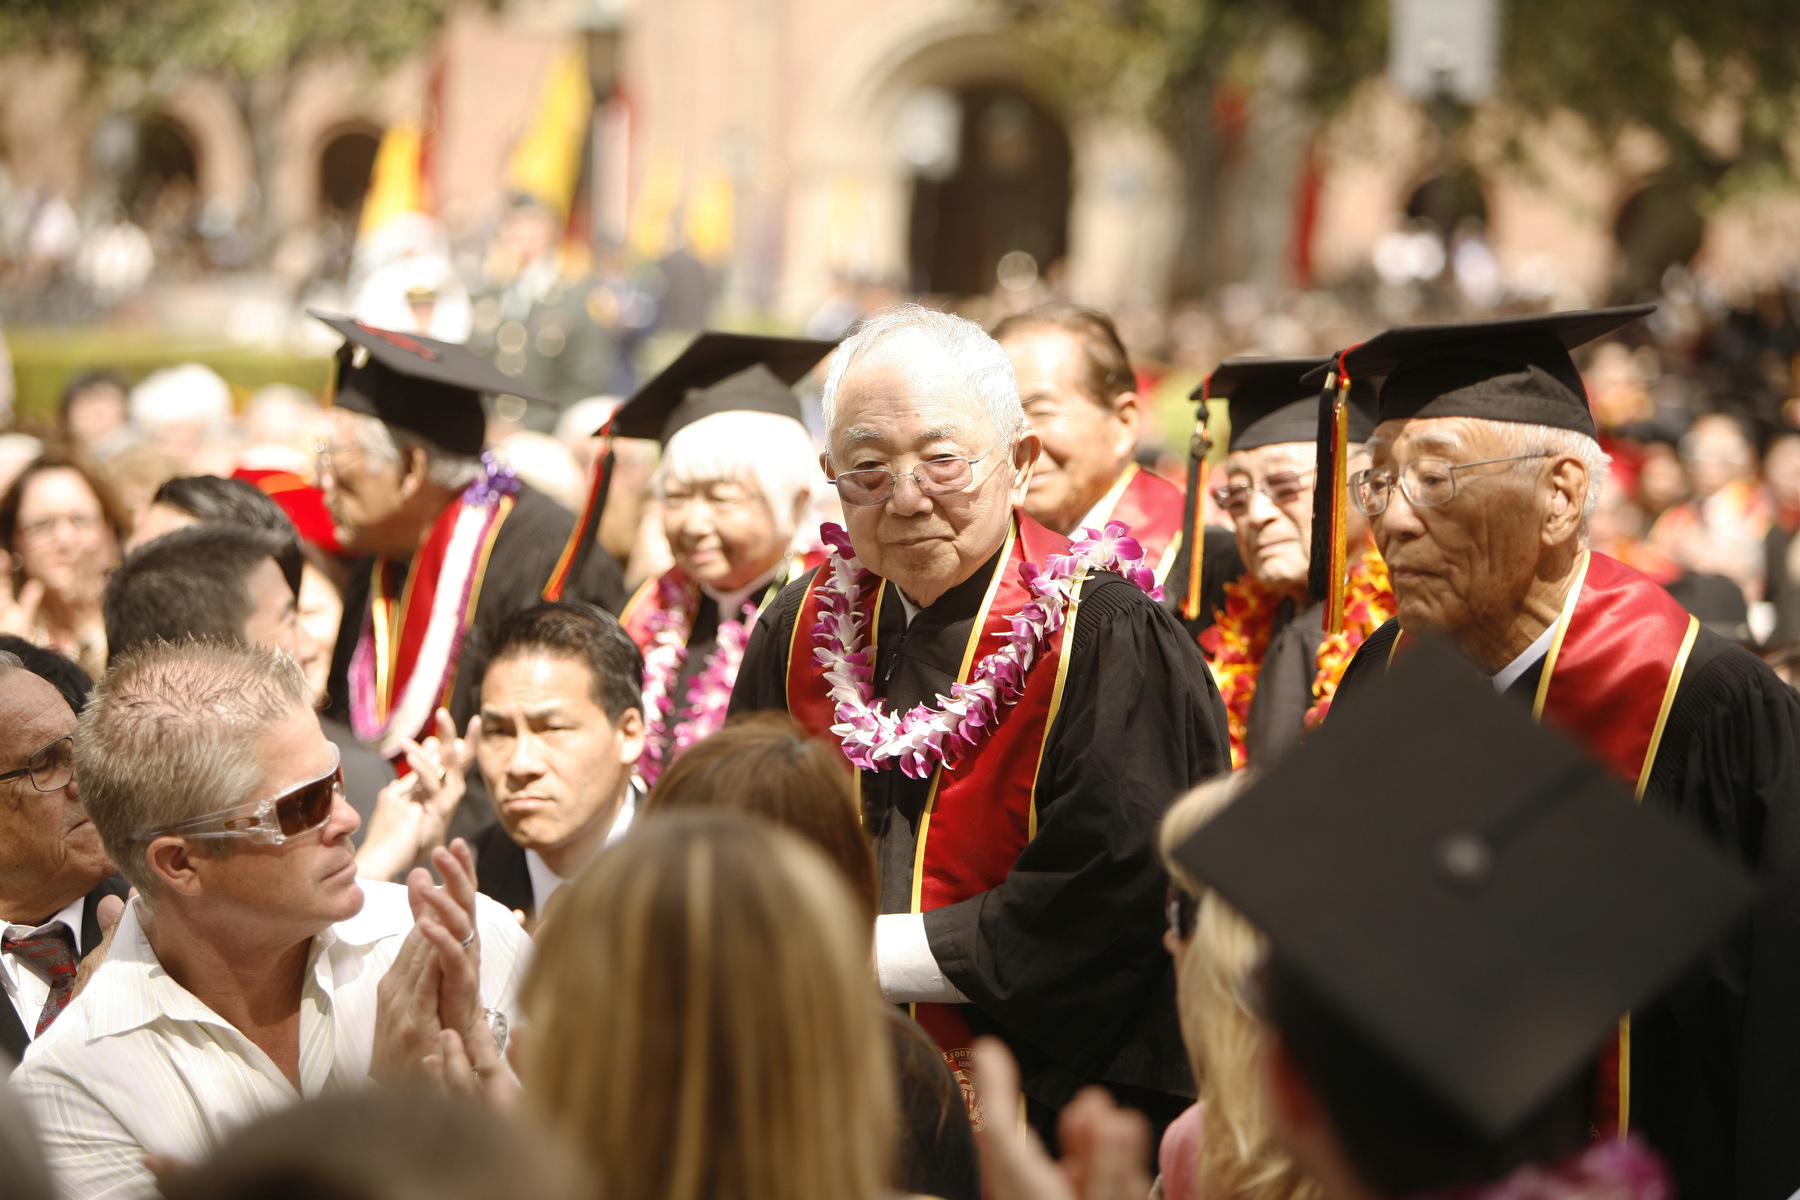 Nisei students received honorary degrees at the 2012 Commencement